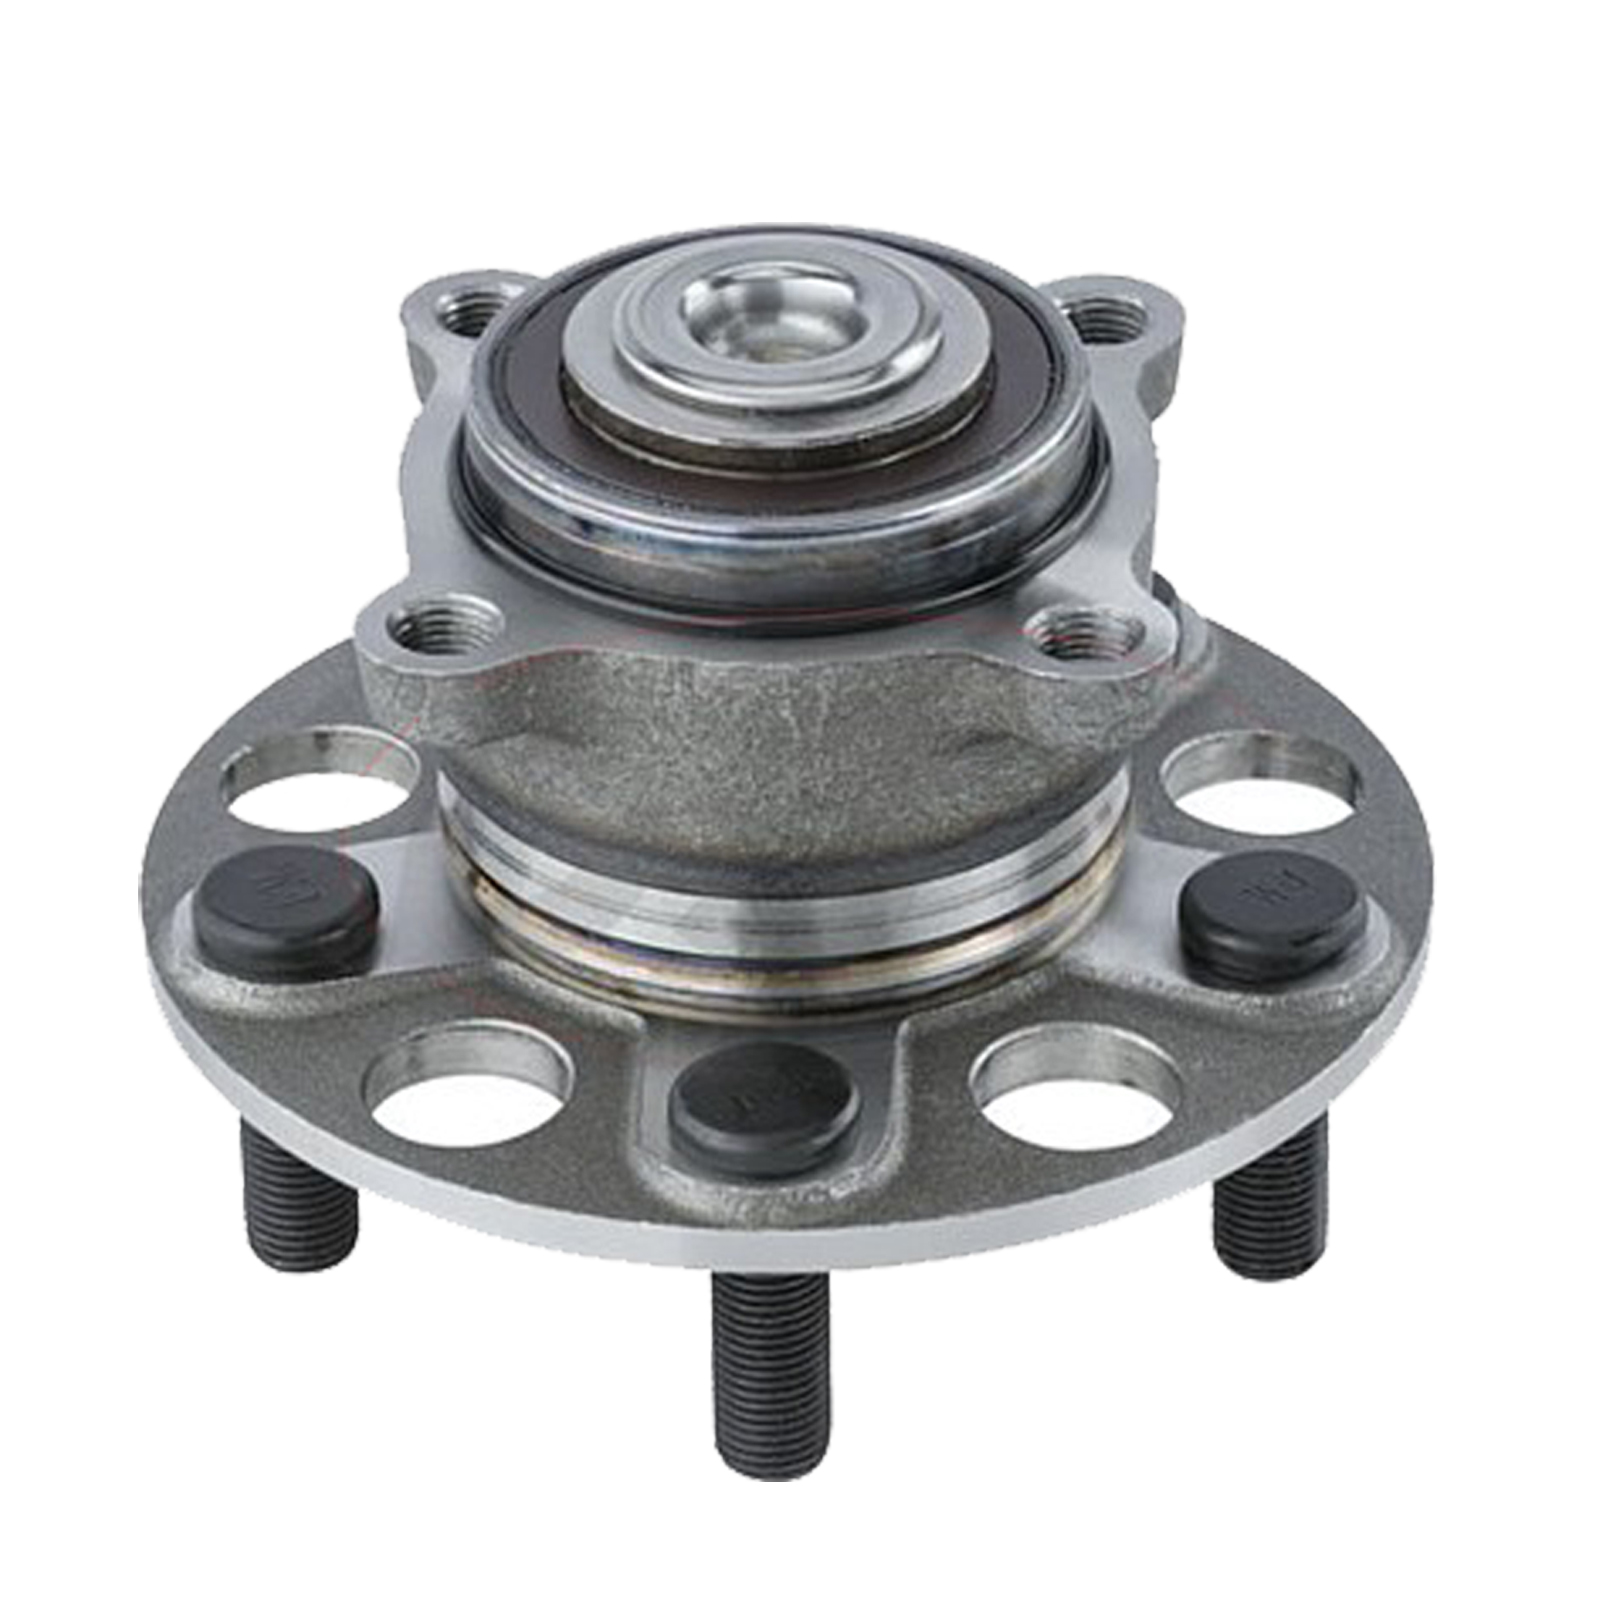 Rear Wheel Hub and Bearing Assembly - FWD Only Fits Driver or Passenger Side